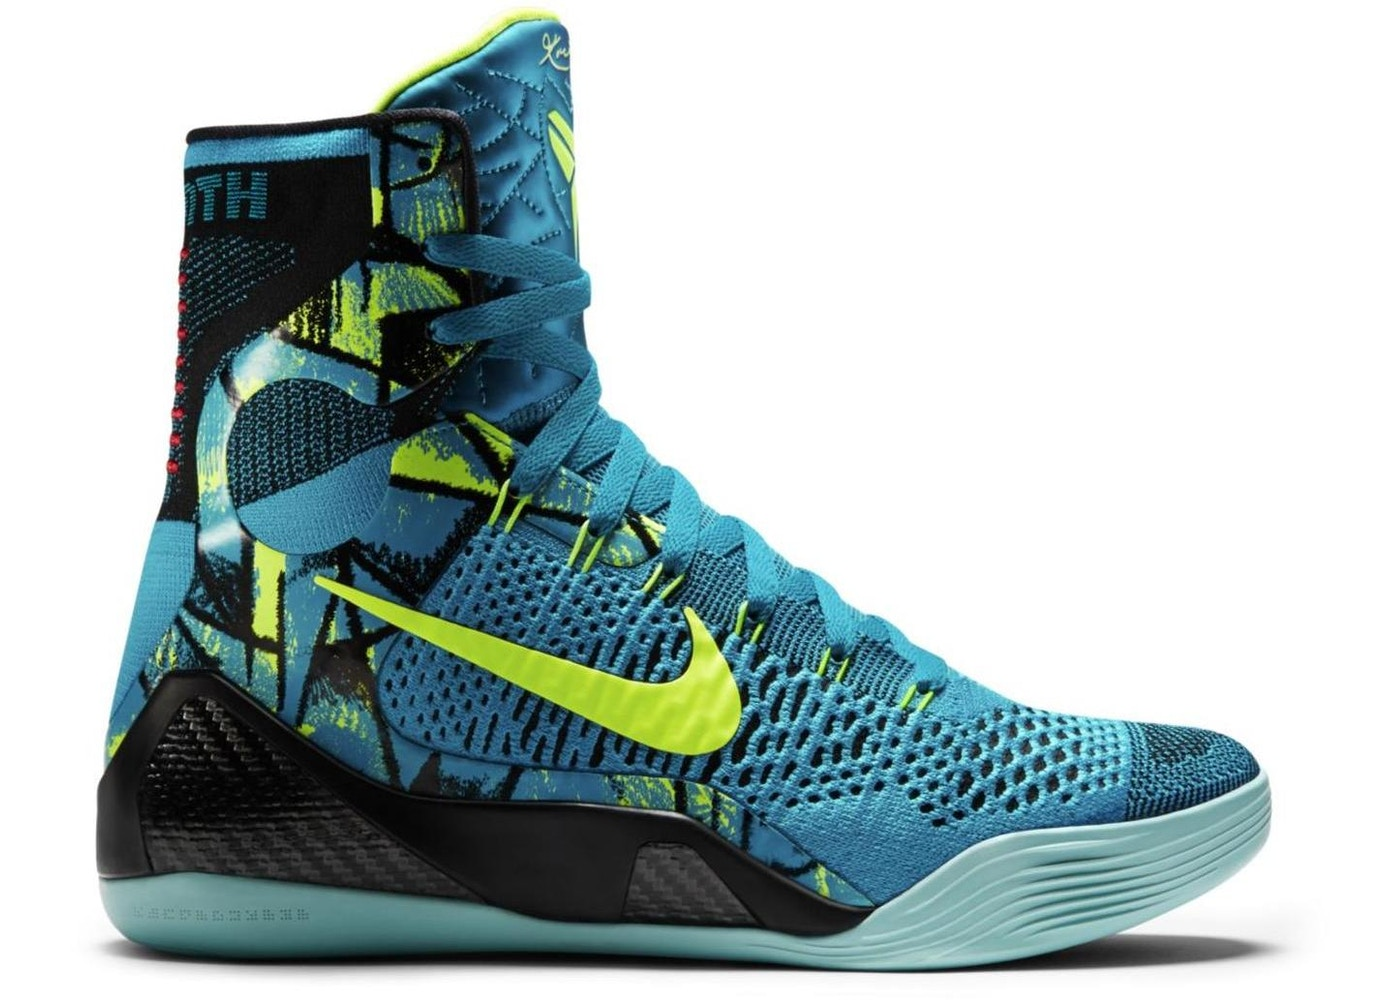 cheap for discount bceb0 fb76a Kobe 9 Elite Perspective - 630847-400 641714 400